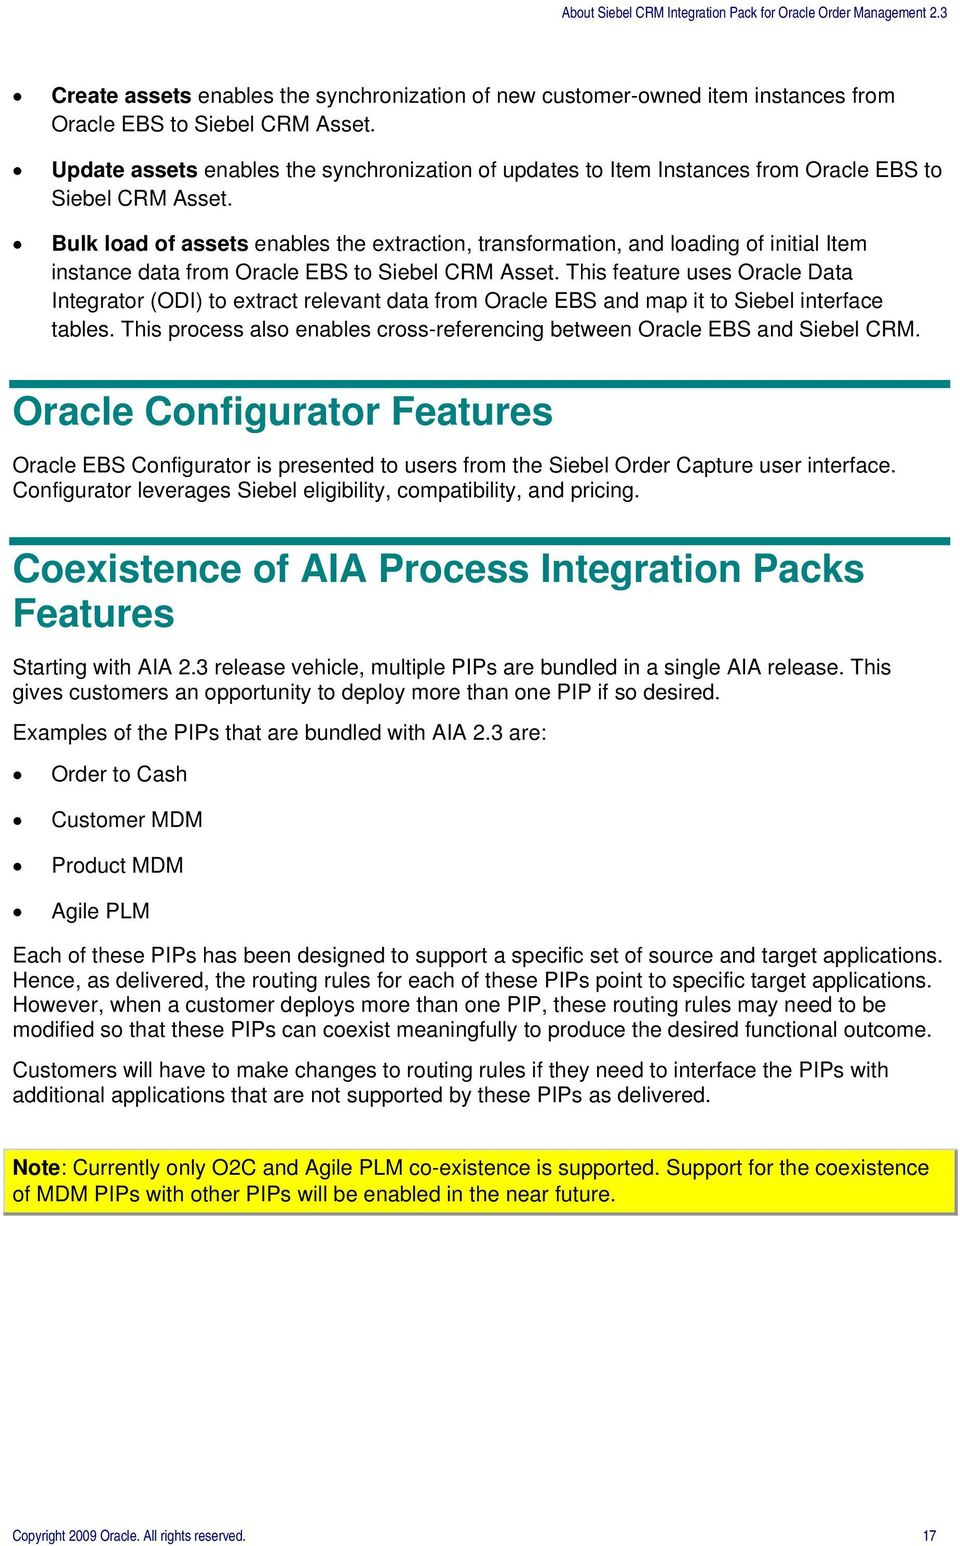 Bulk load of assets enables the extraction, transformation, and loading of initial Item instance data from Oracle EBS to Siebel CRM Asset.